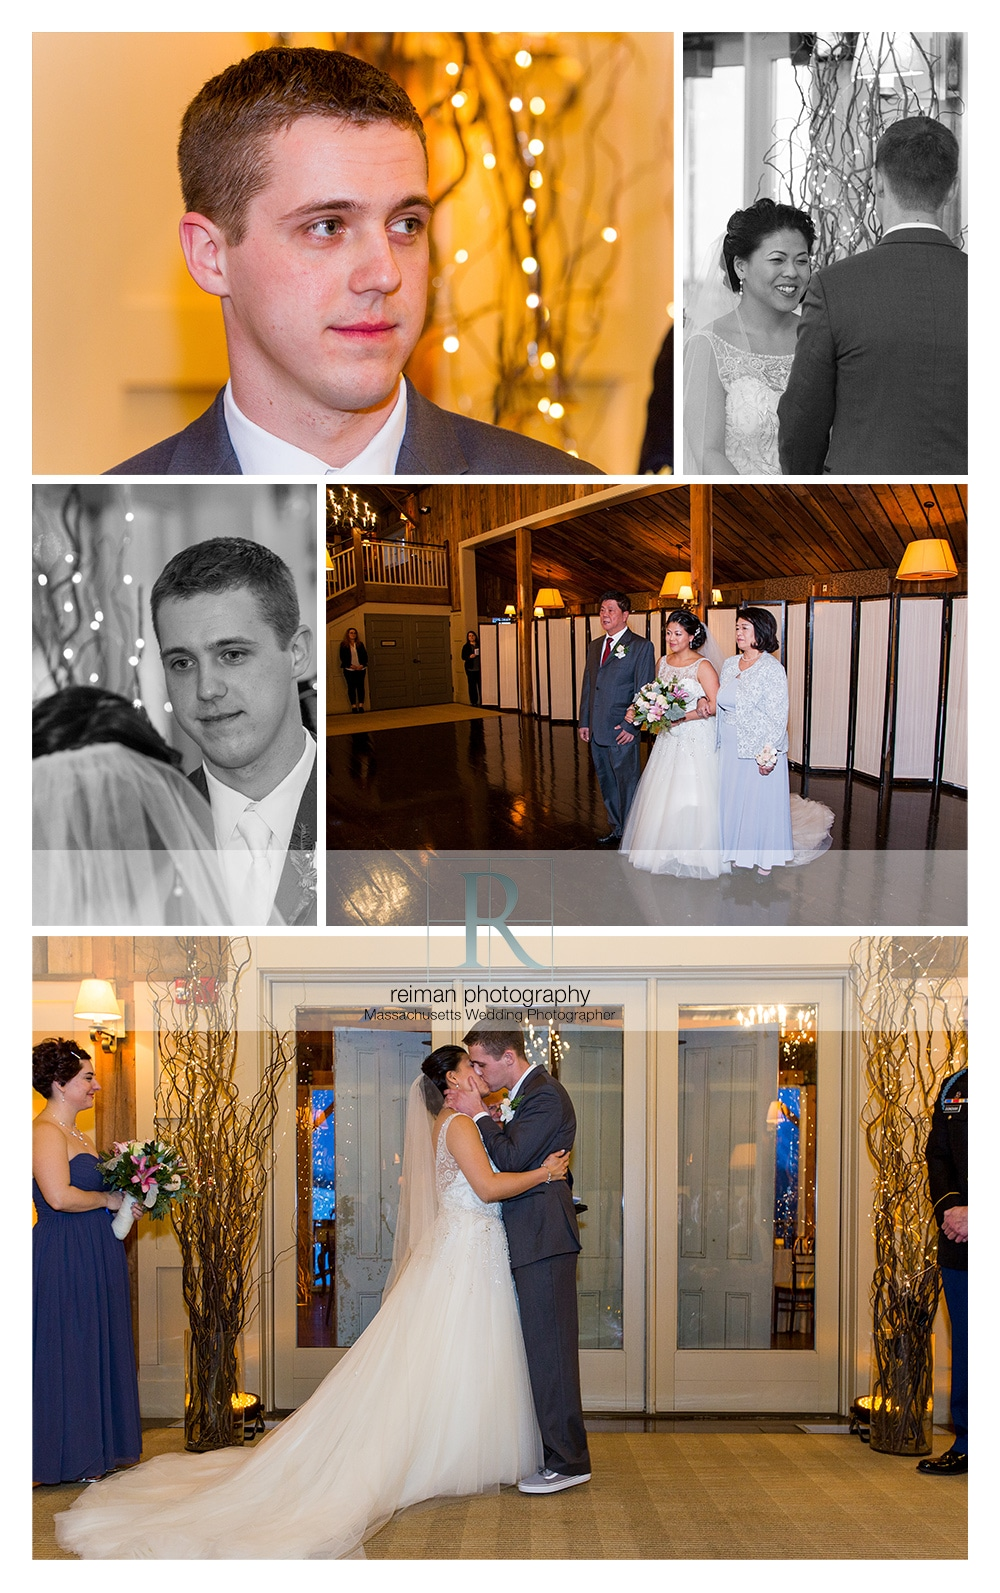 Winter Wedding, The Barn at Gibbet Hill, Reiman Photography